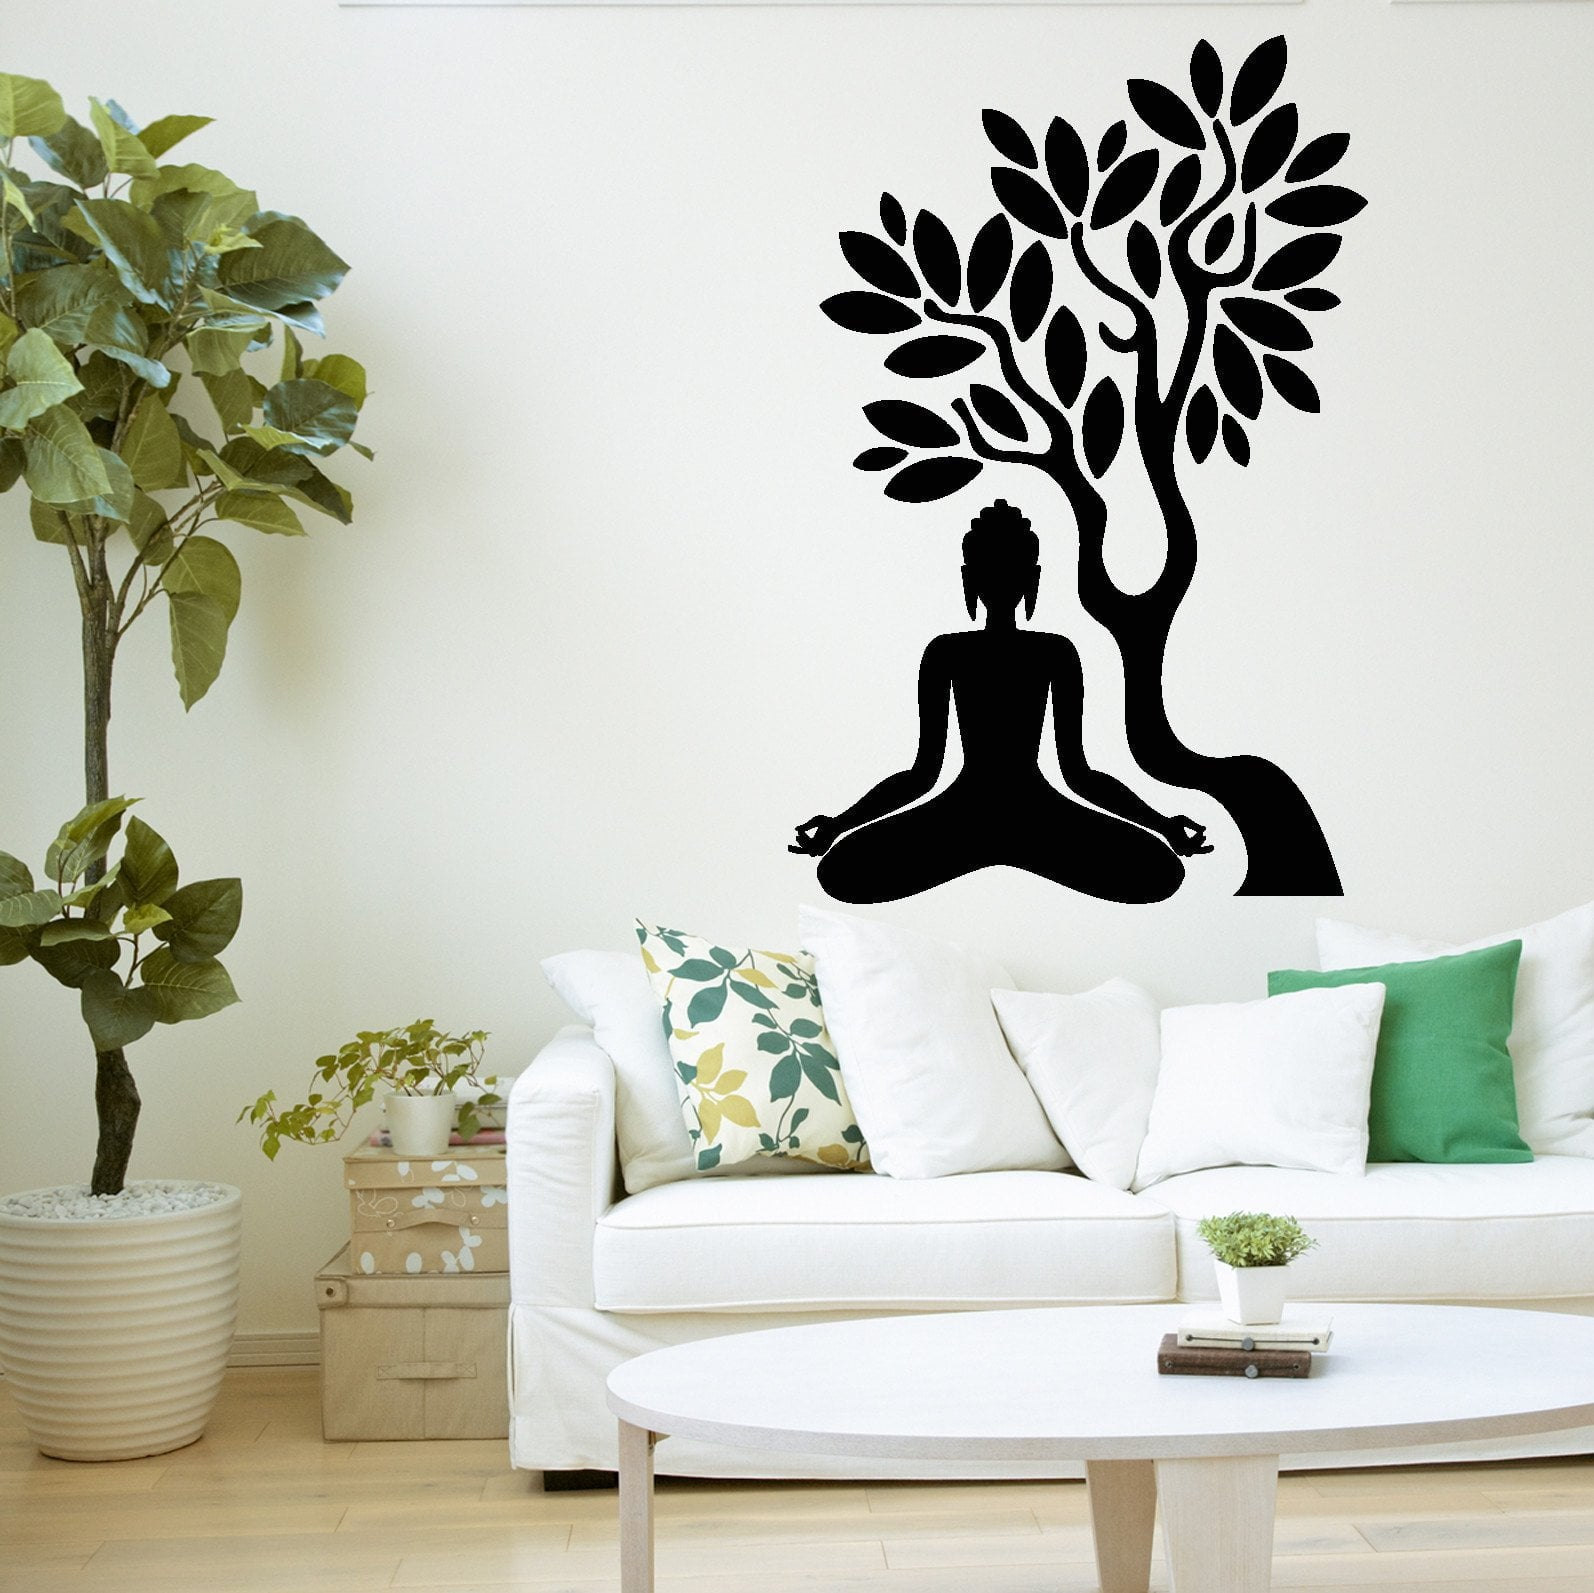 Buddha tree wall decal blossom yoga meditation relaxation om zen unique gift z2668